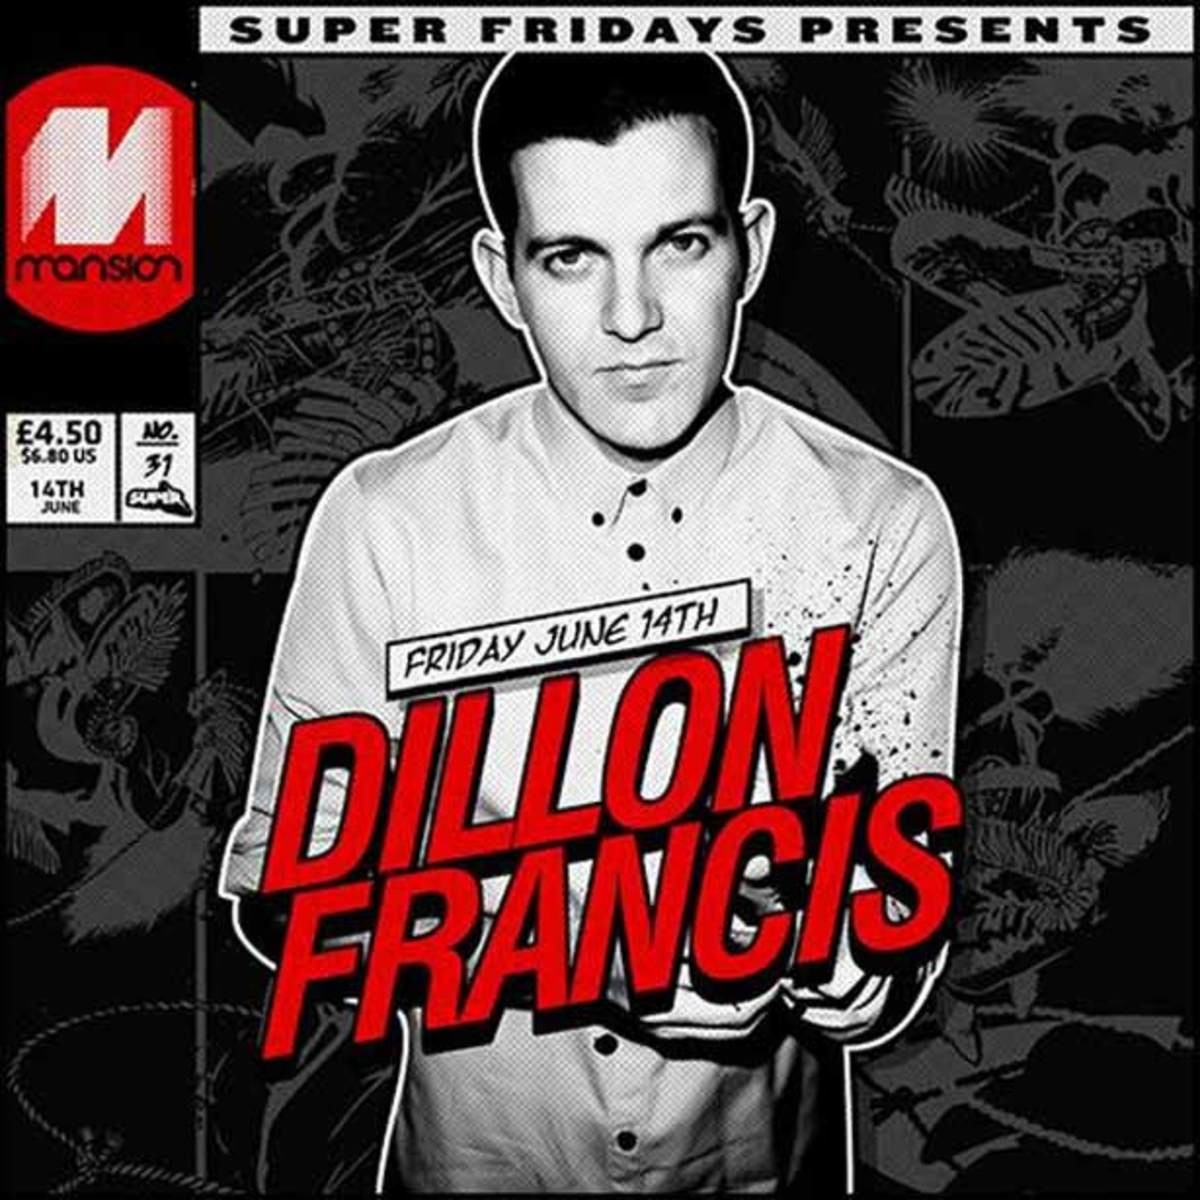 EDM Event - Dillon Francis Raises The Roof This Friday At Mansion Miami